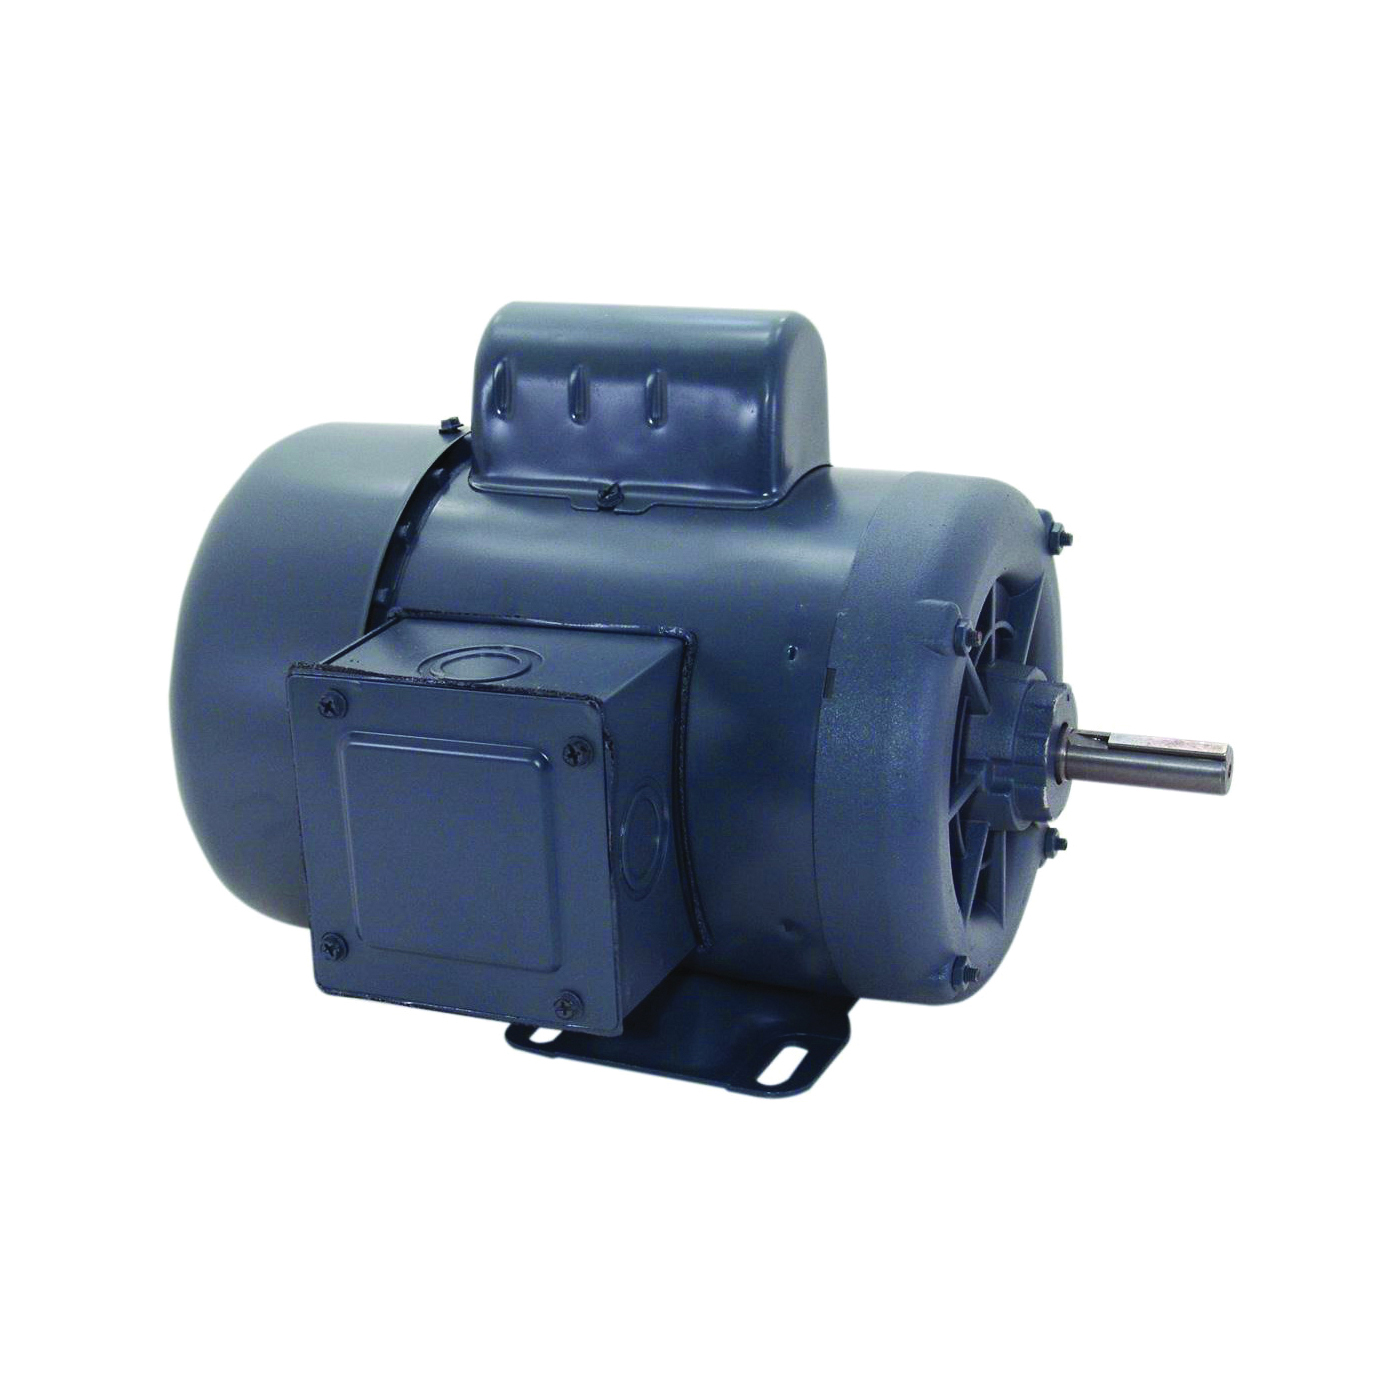 Picture of Century C521 Electric Motor, 0.5 hp, 1 -Phase, 115/208/230 V, 5/8 in Dia x 1-7/8 in L Shaft, Ball Bearing